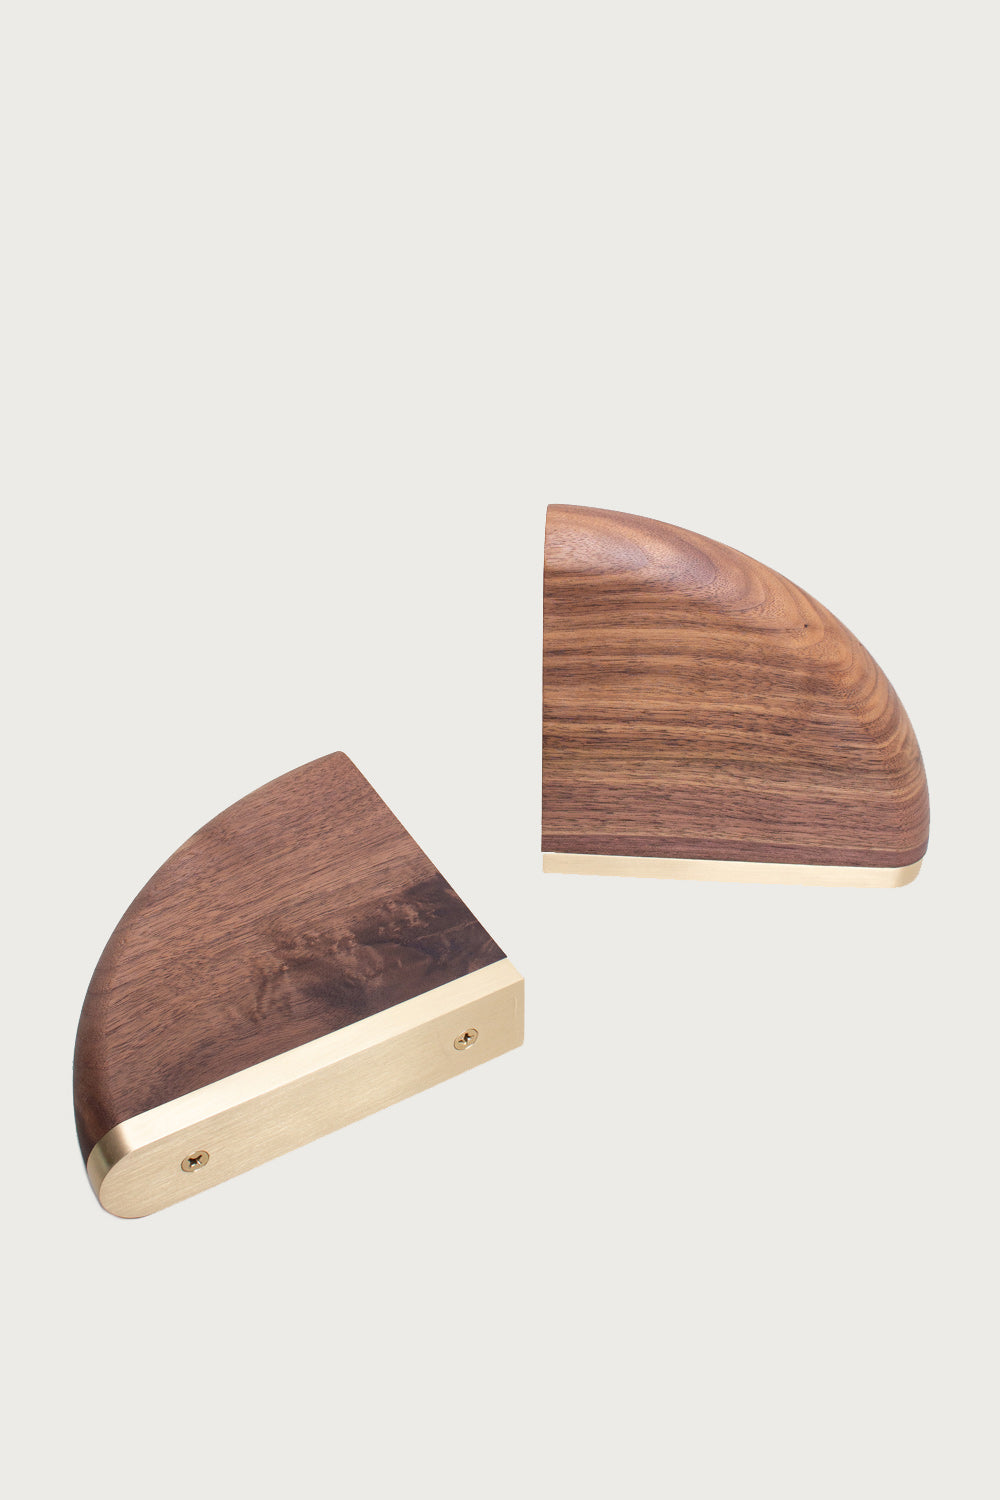 Elijah Leed Bookends in Burl Wood - Vert & Vogue